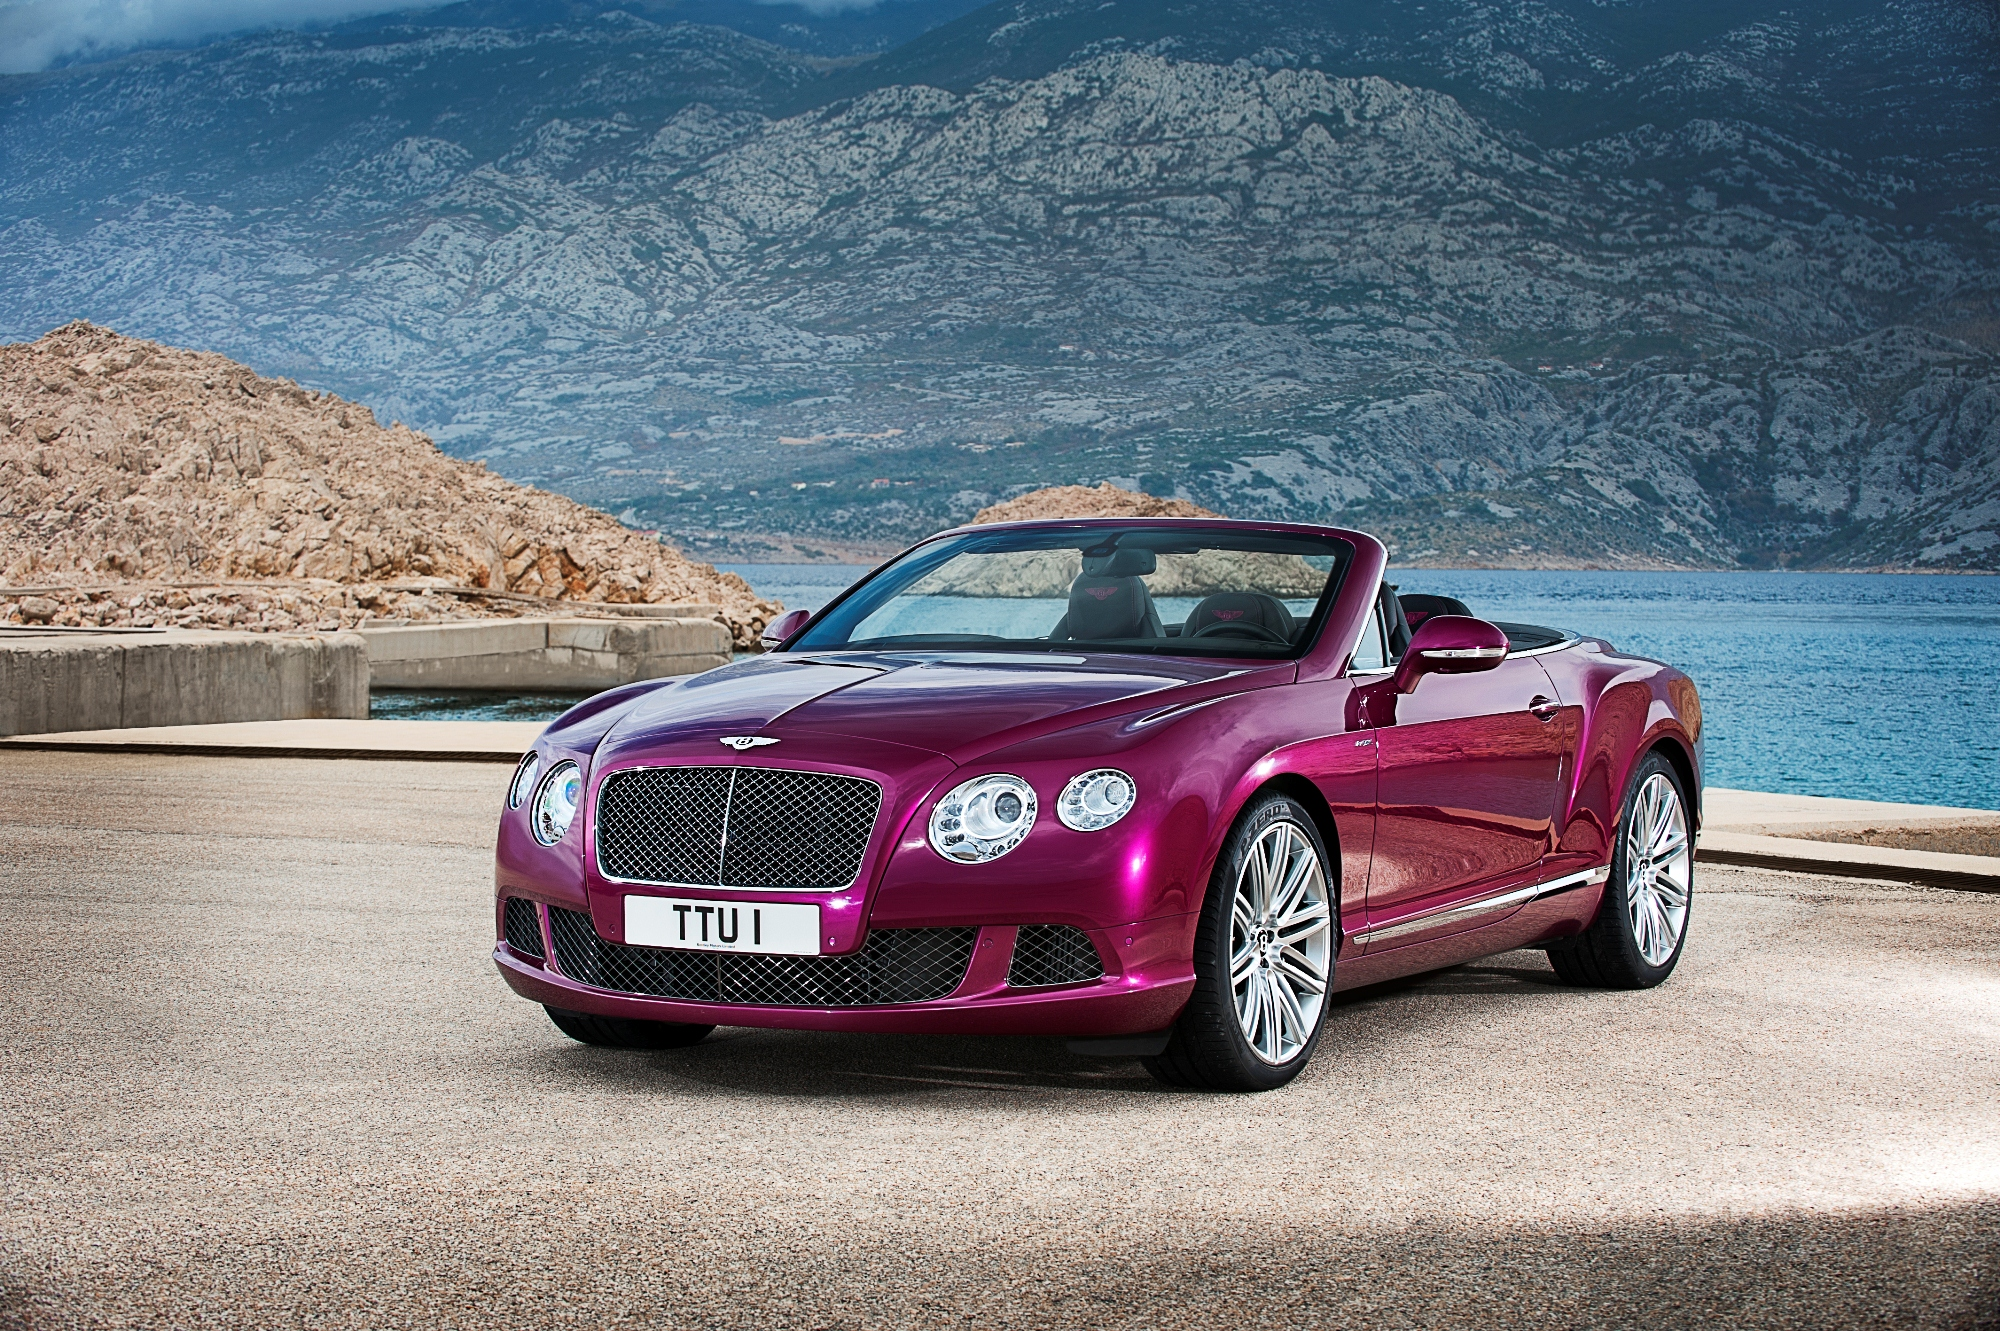 The Fastest 4-Seater Convertible in the World